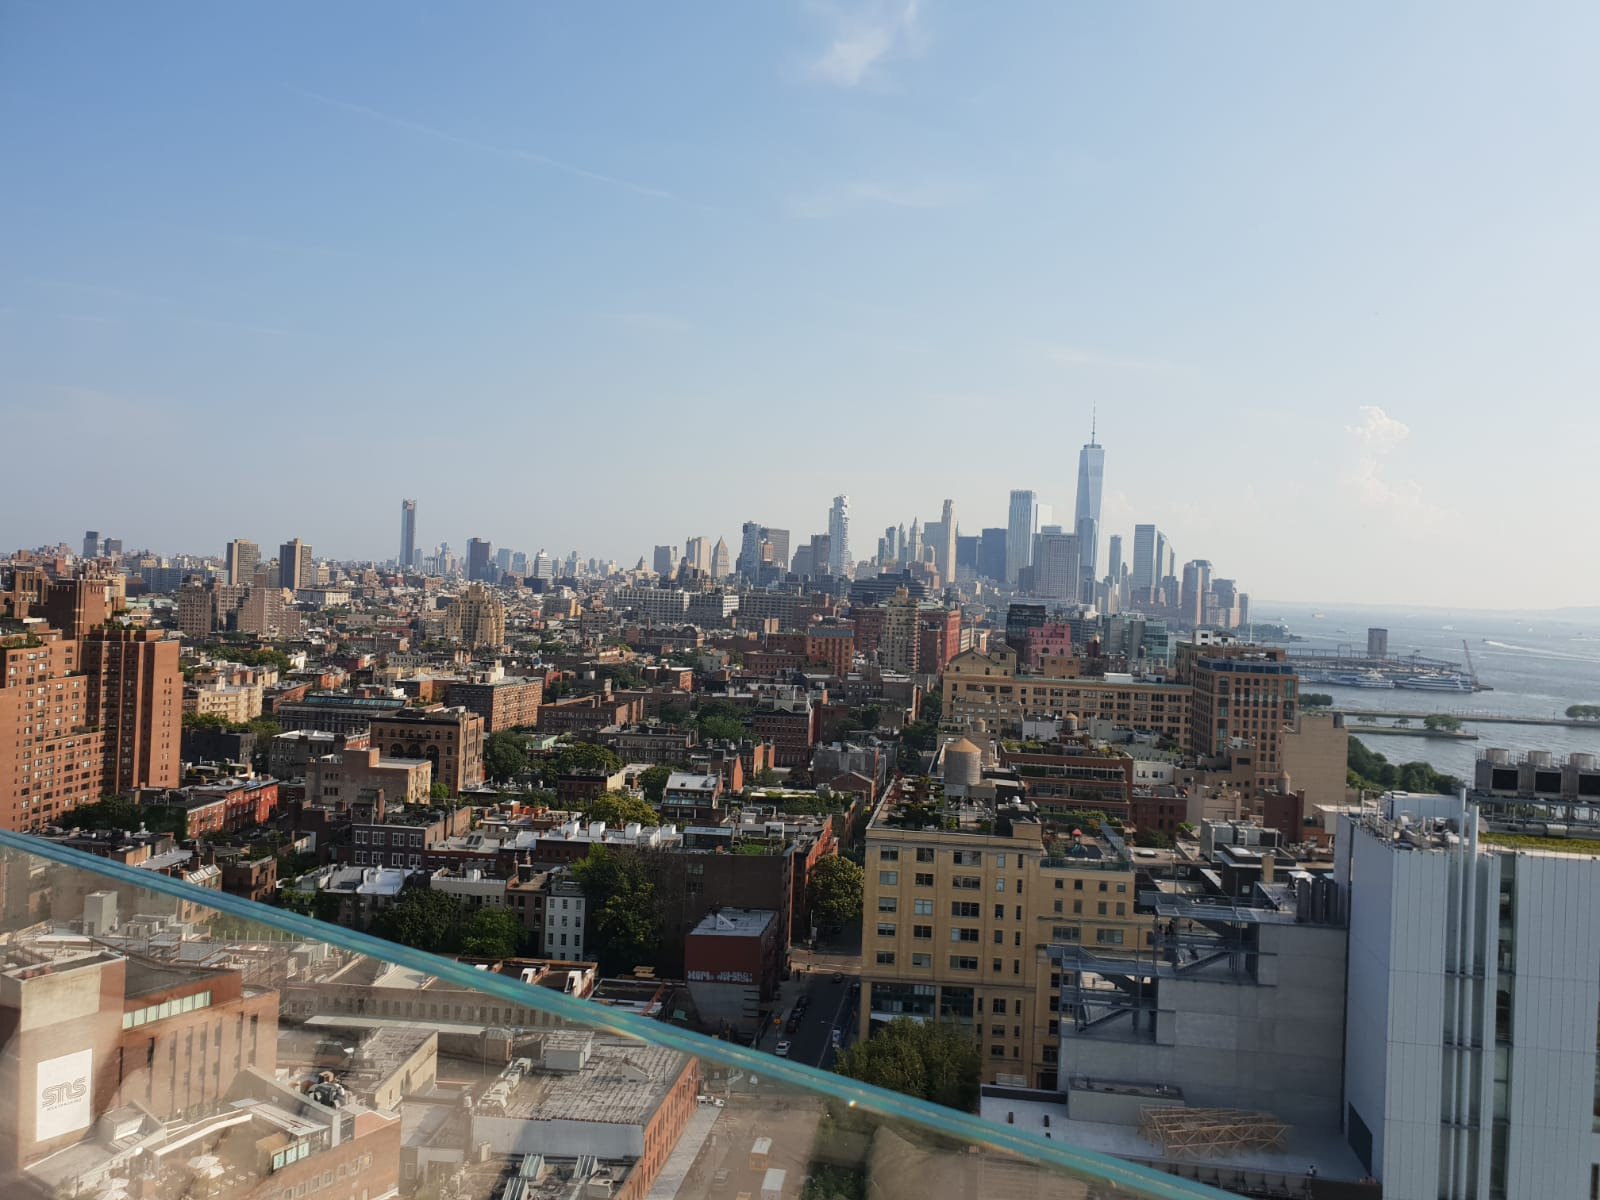 The view from Le Bain